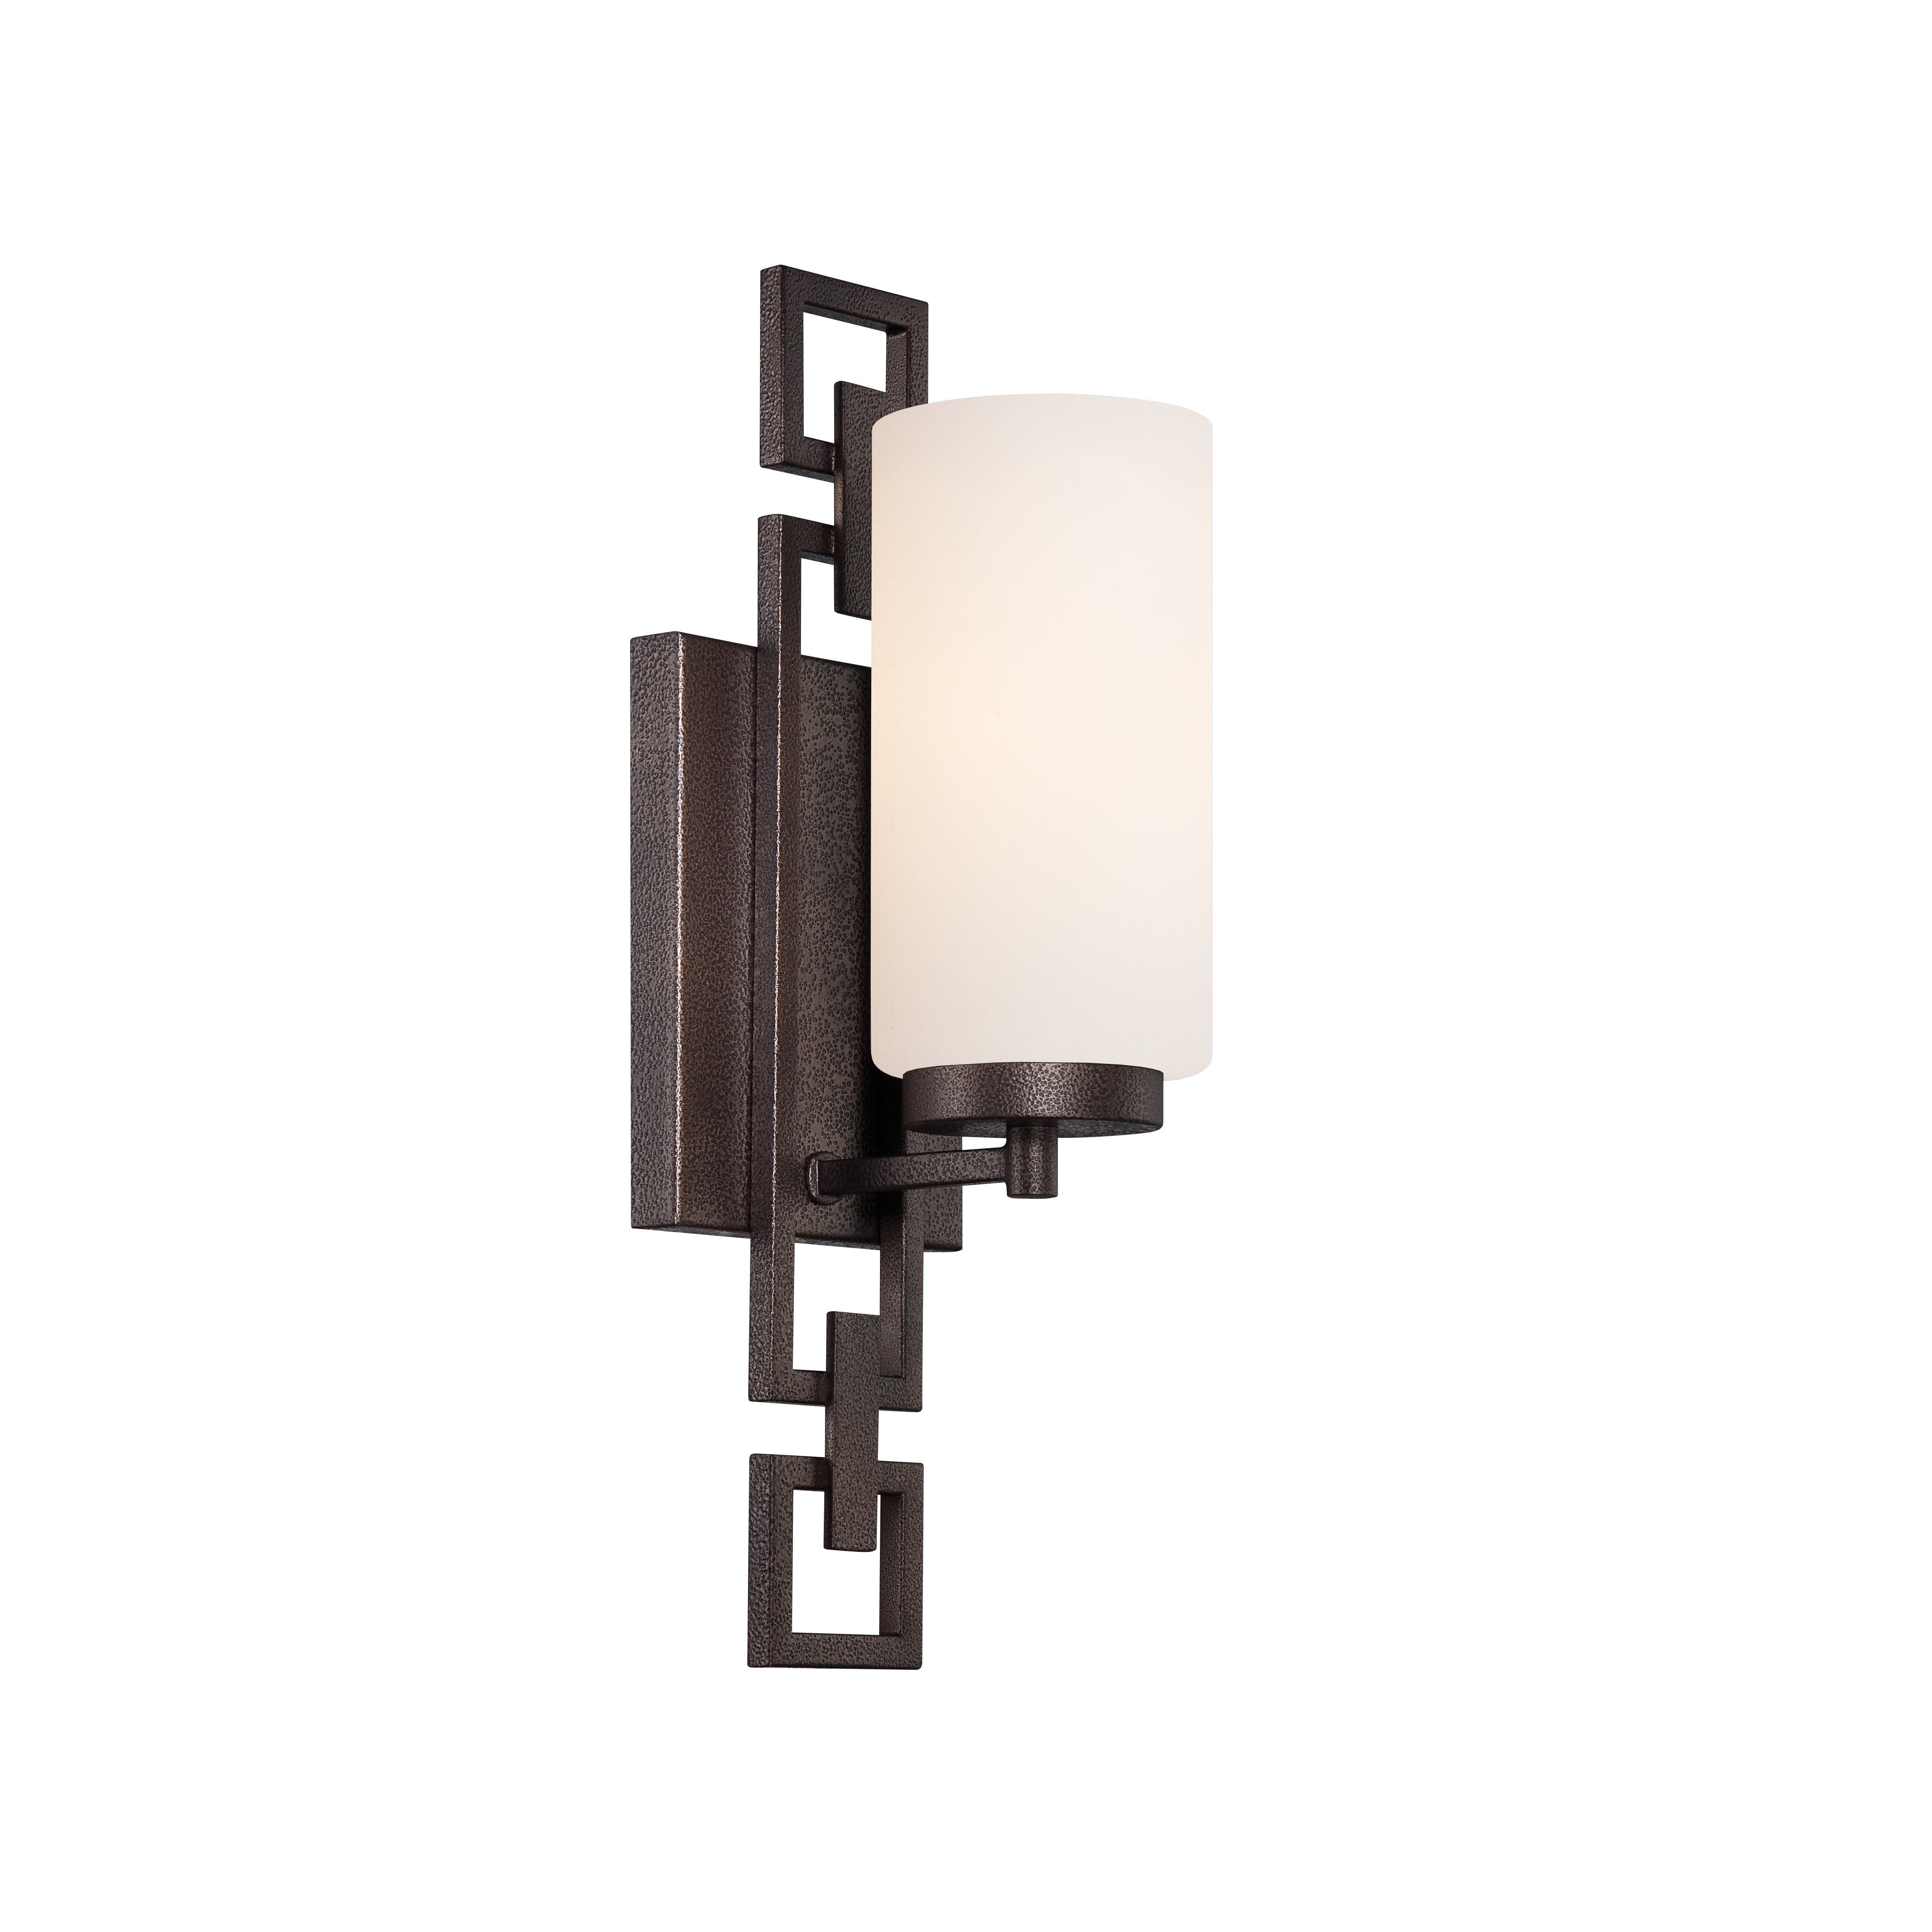 Designers Fountain Lighting Canada: Designers Fountain Del Ray 1 Light Wall Sconce